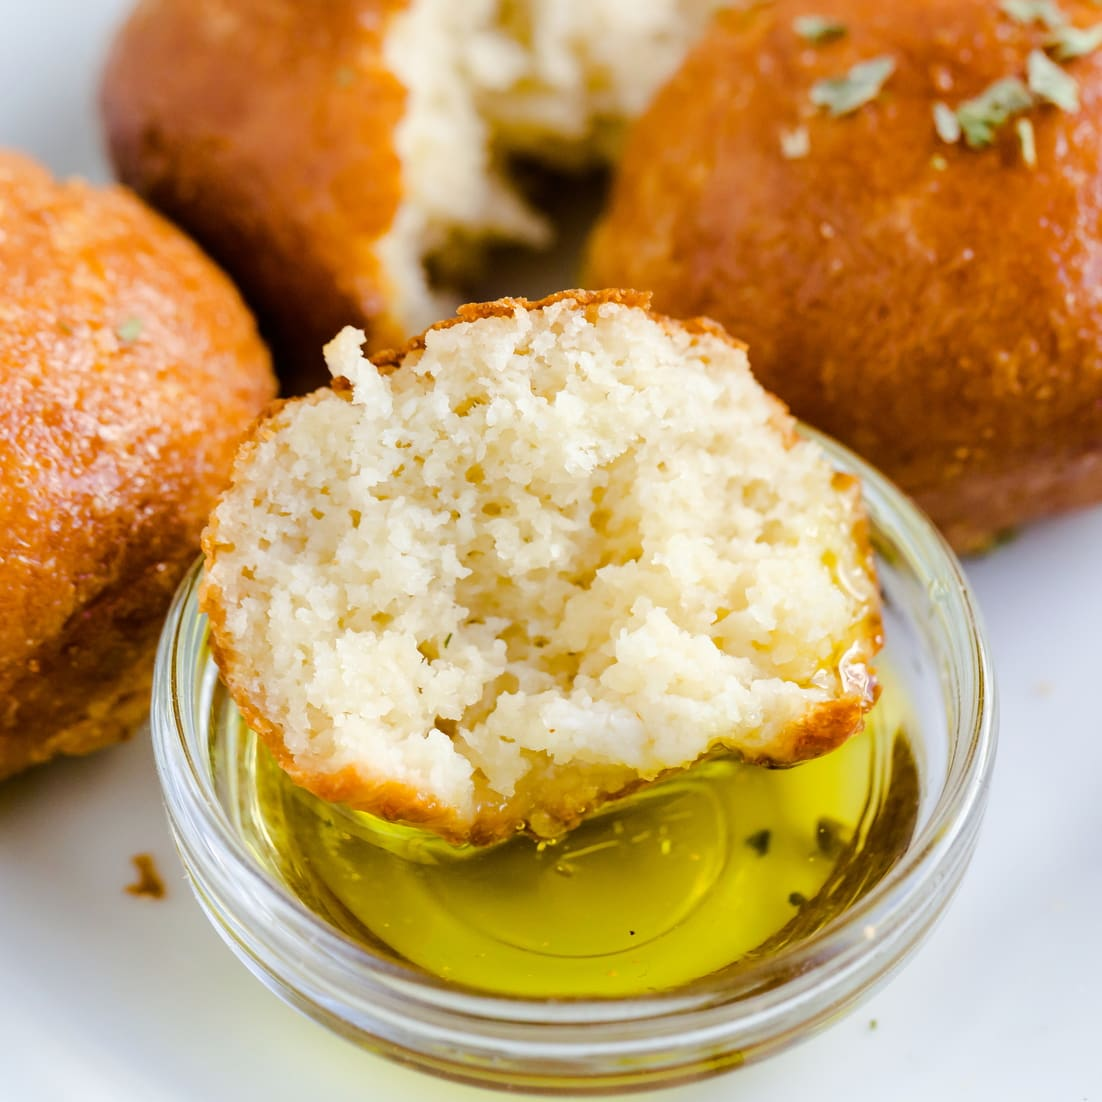 Keto Air Fryer Cheese Biscuits dipped in olive oil